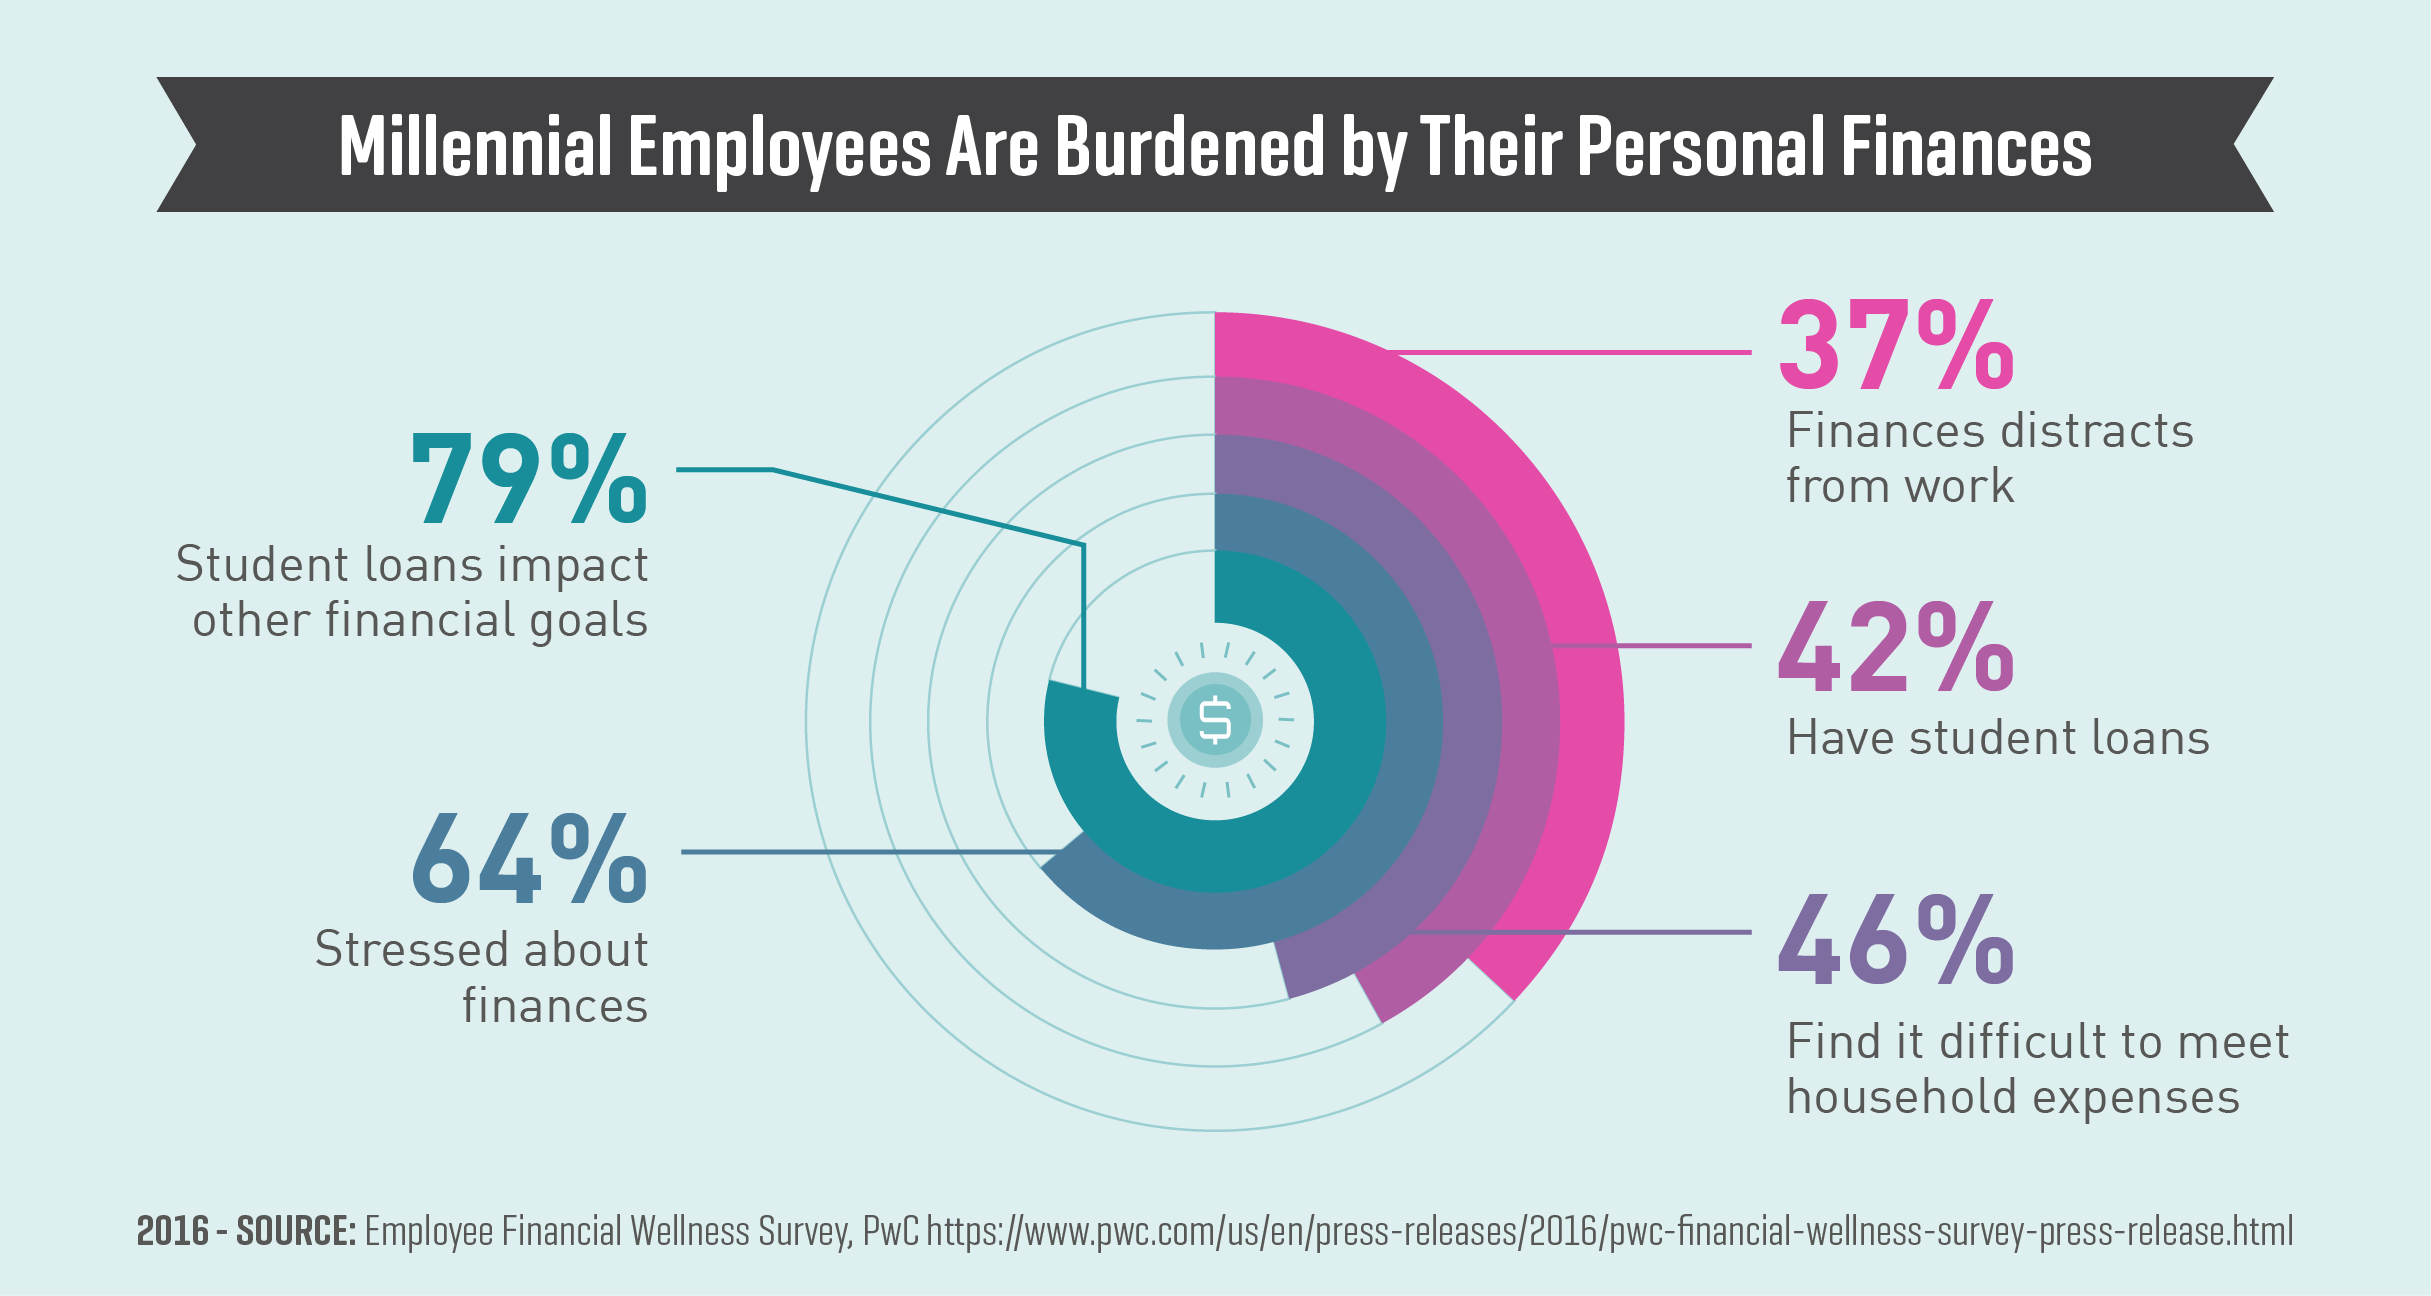 Millennial Employees Are Burdened by Their Personal Finances (2016)